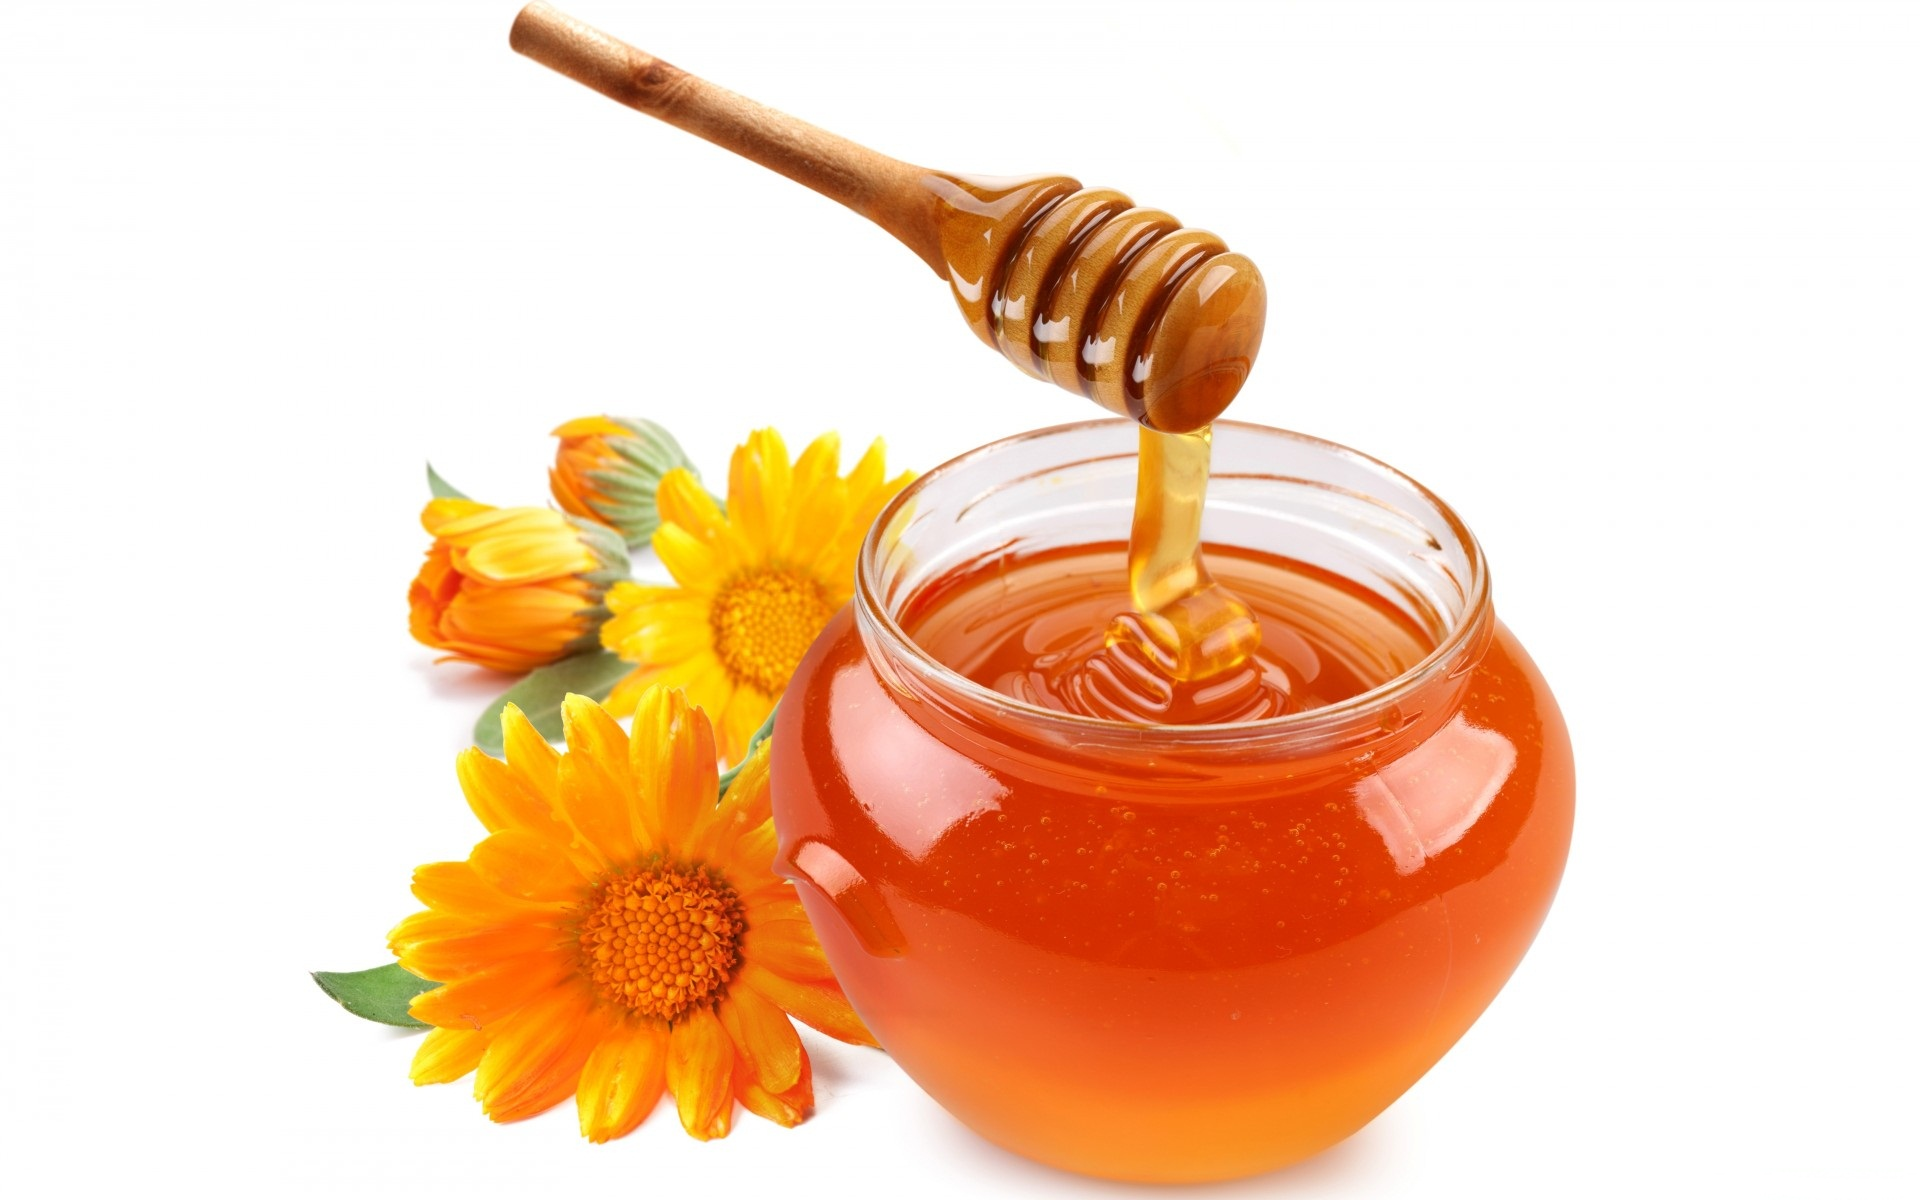 Honey Betekenis The Meaning And Symbolism Of The Word Honey